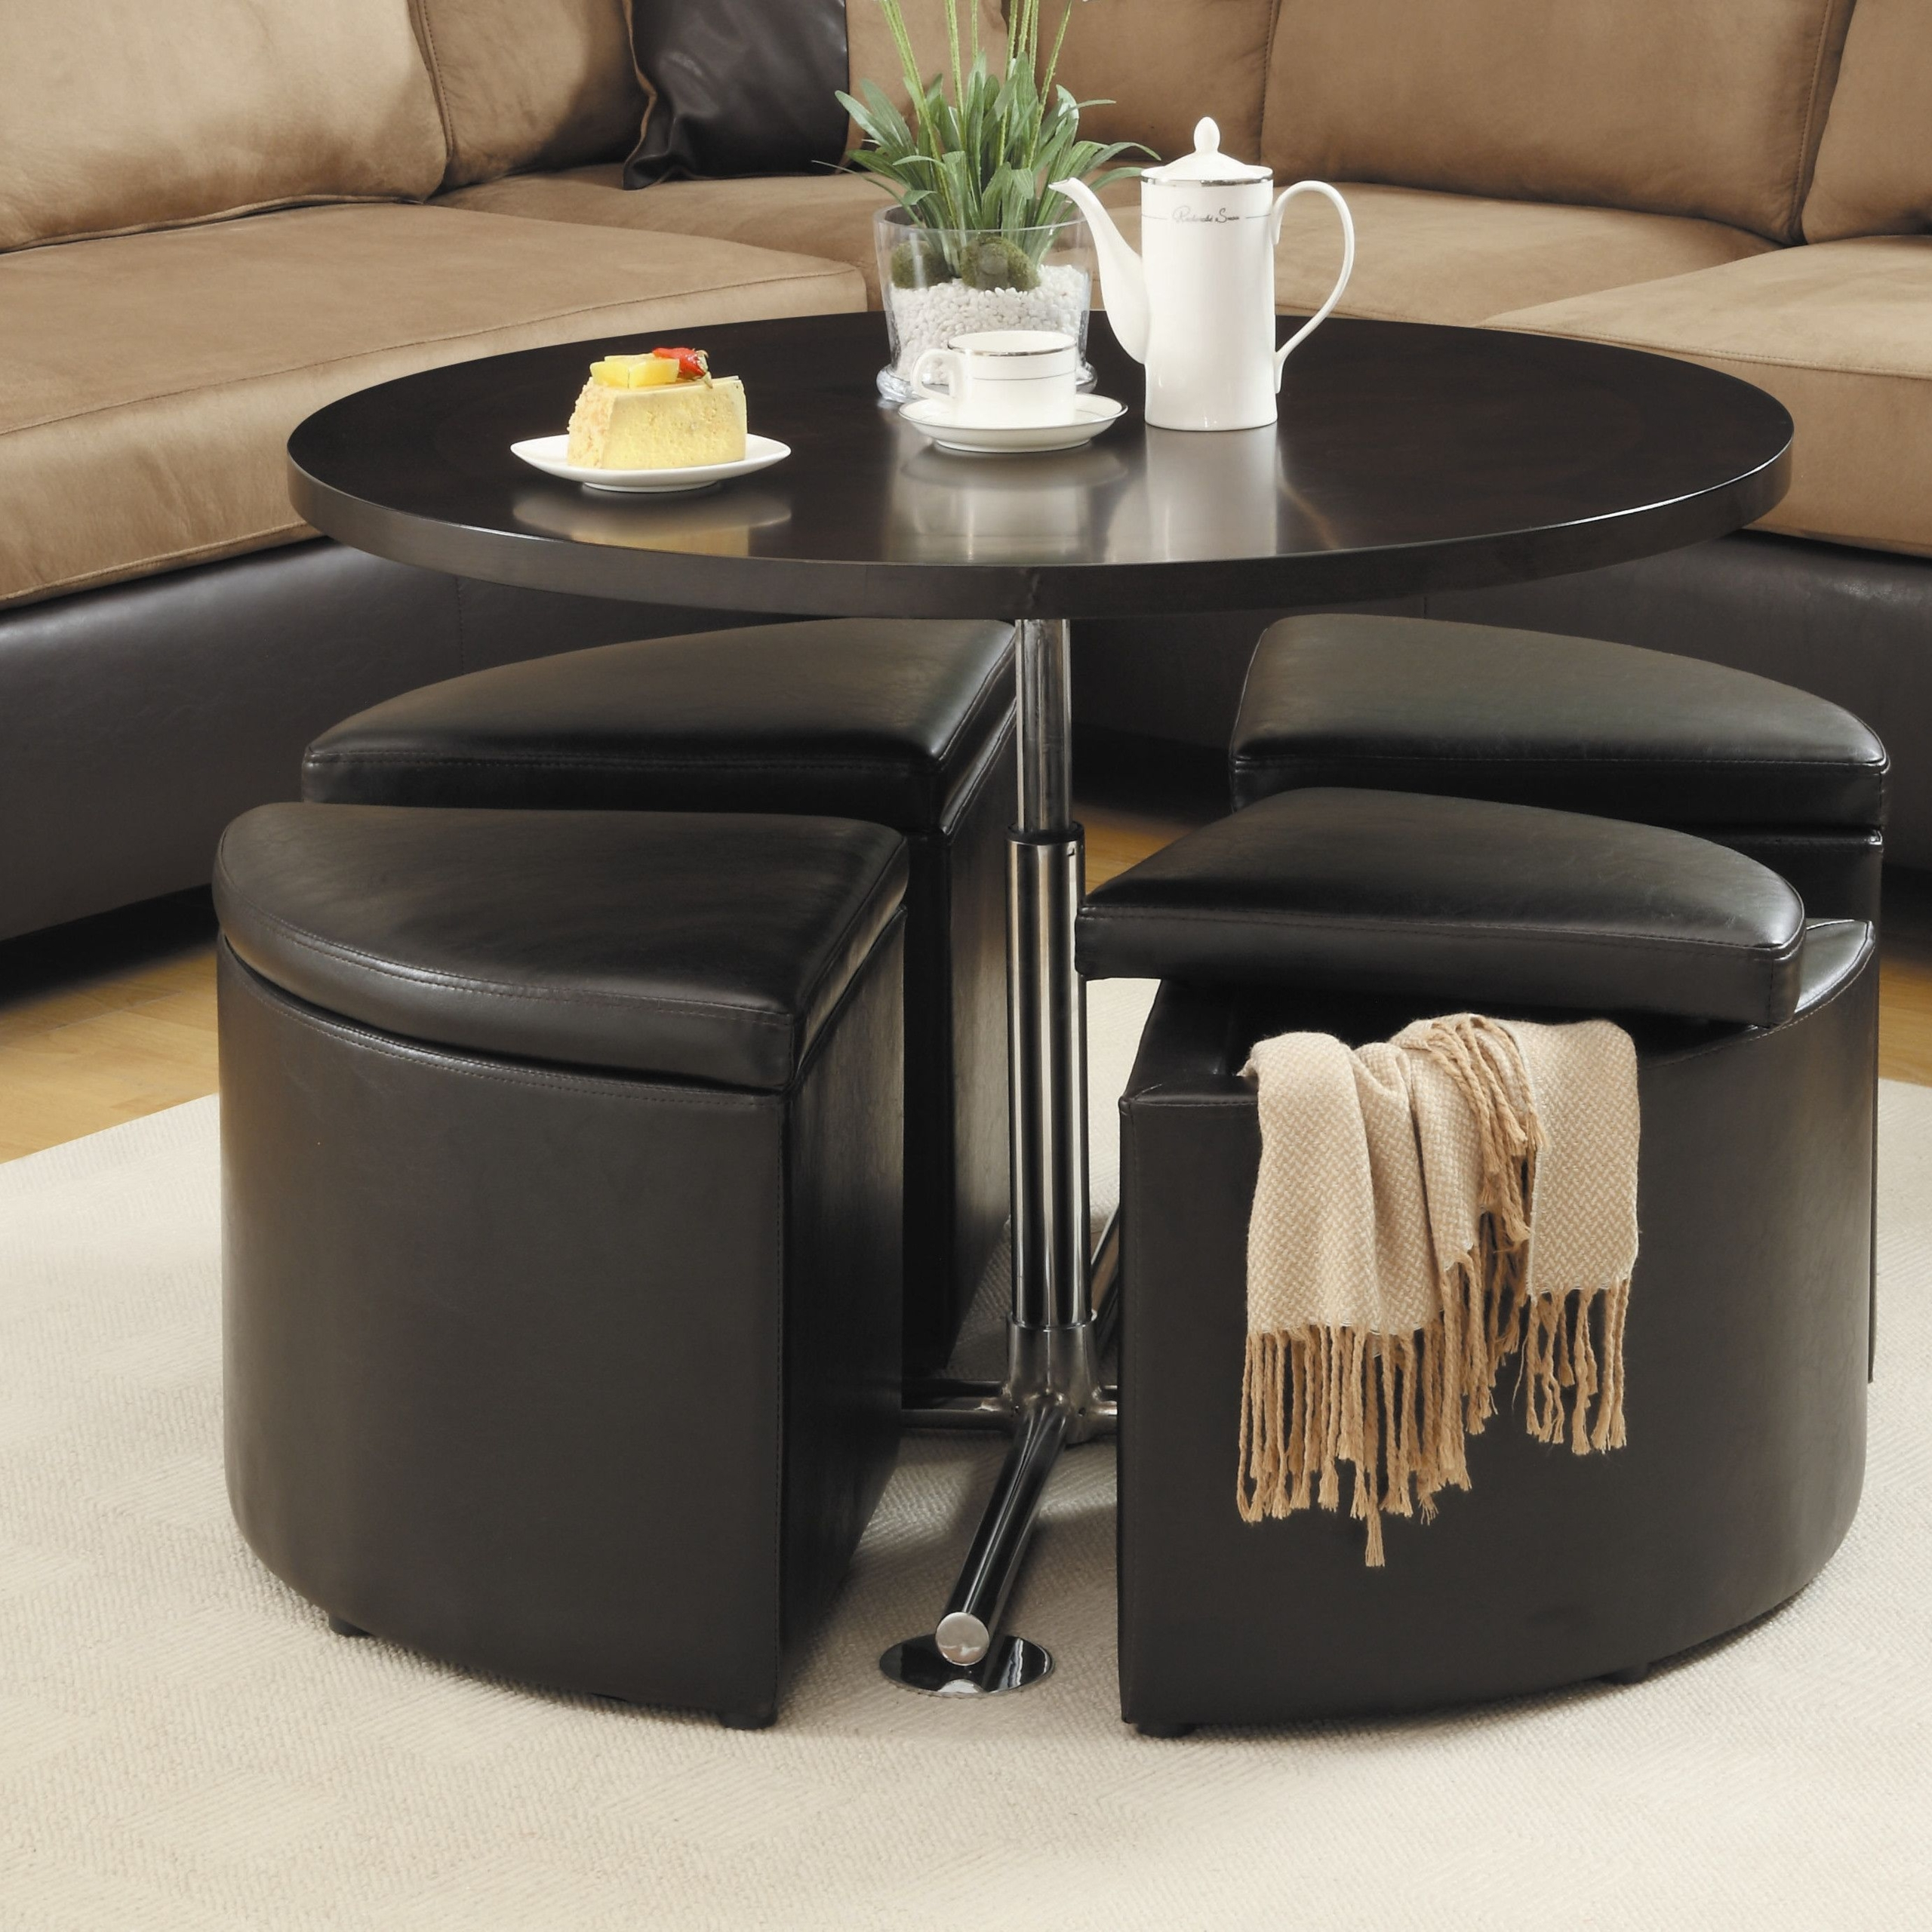 Homelegance Home Creek Hydraulic Lift Cocktail Table with Storage Ottomans multicolor Rubberwood & Round Coffee Table With Storage Ottomans - Foter